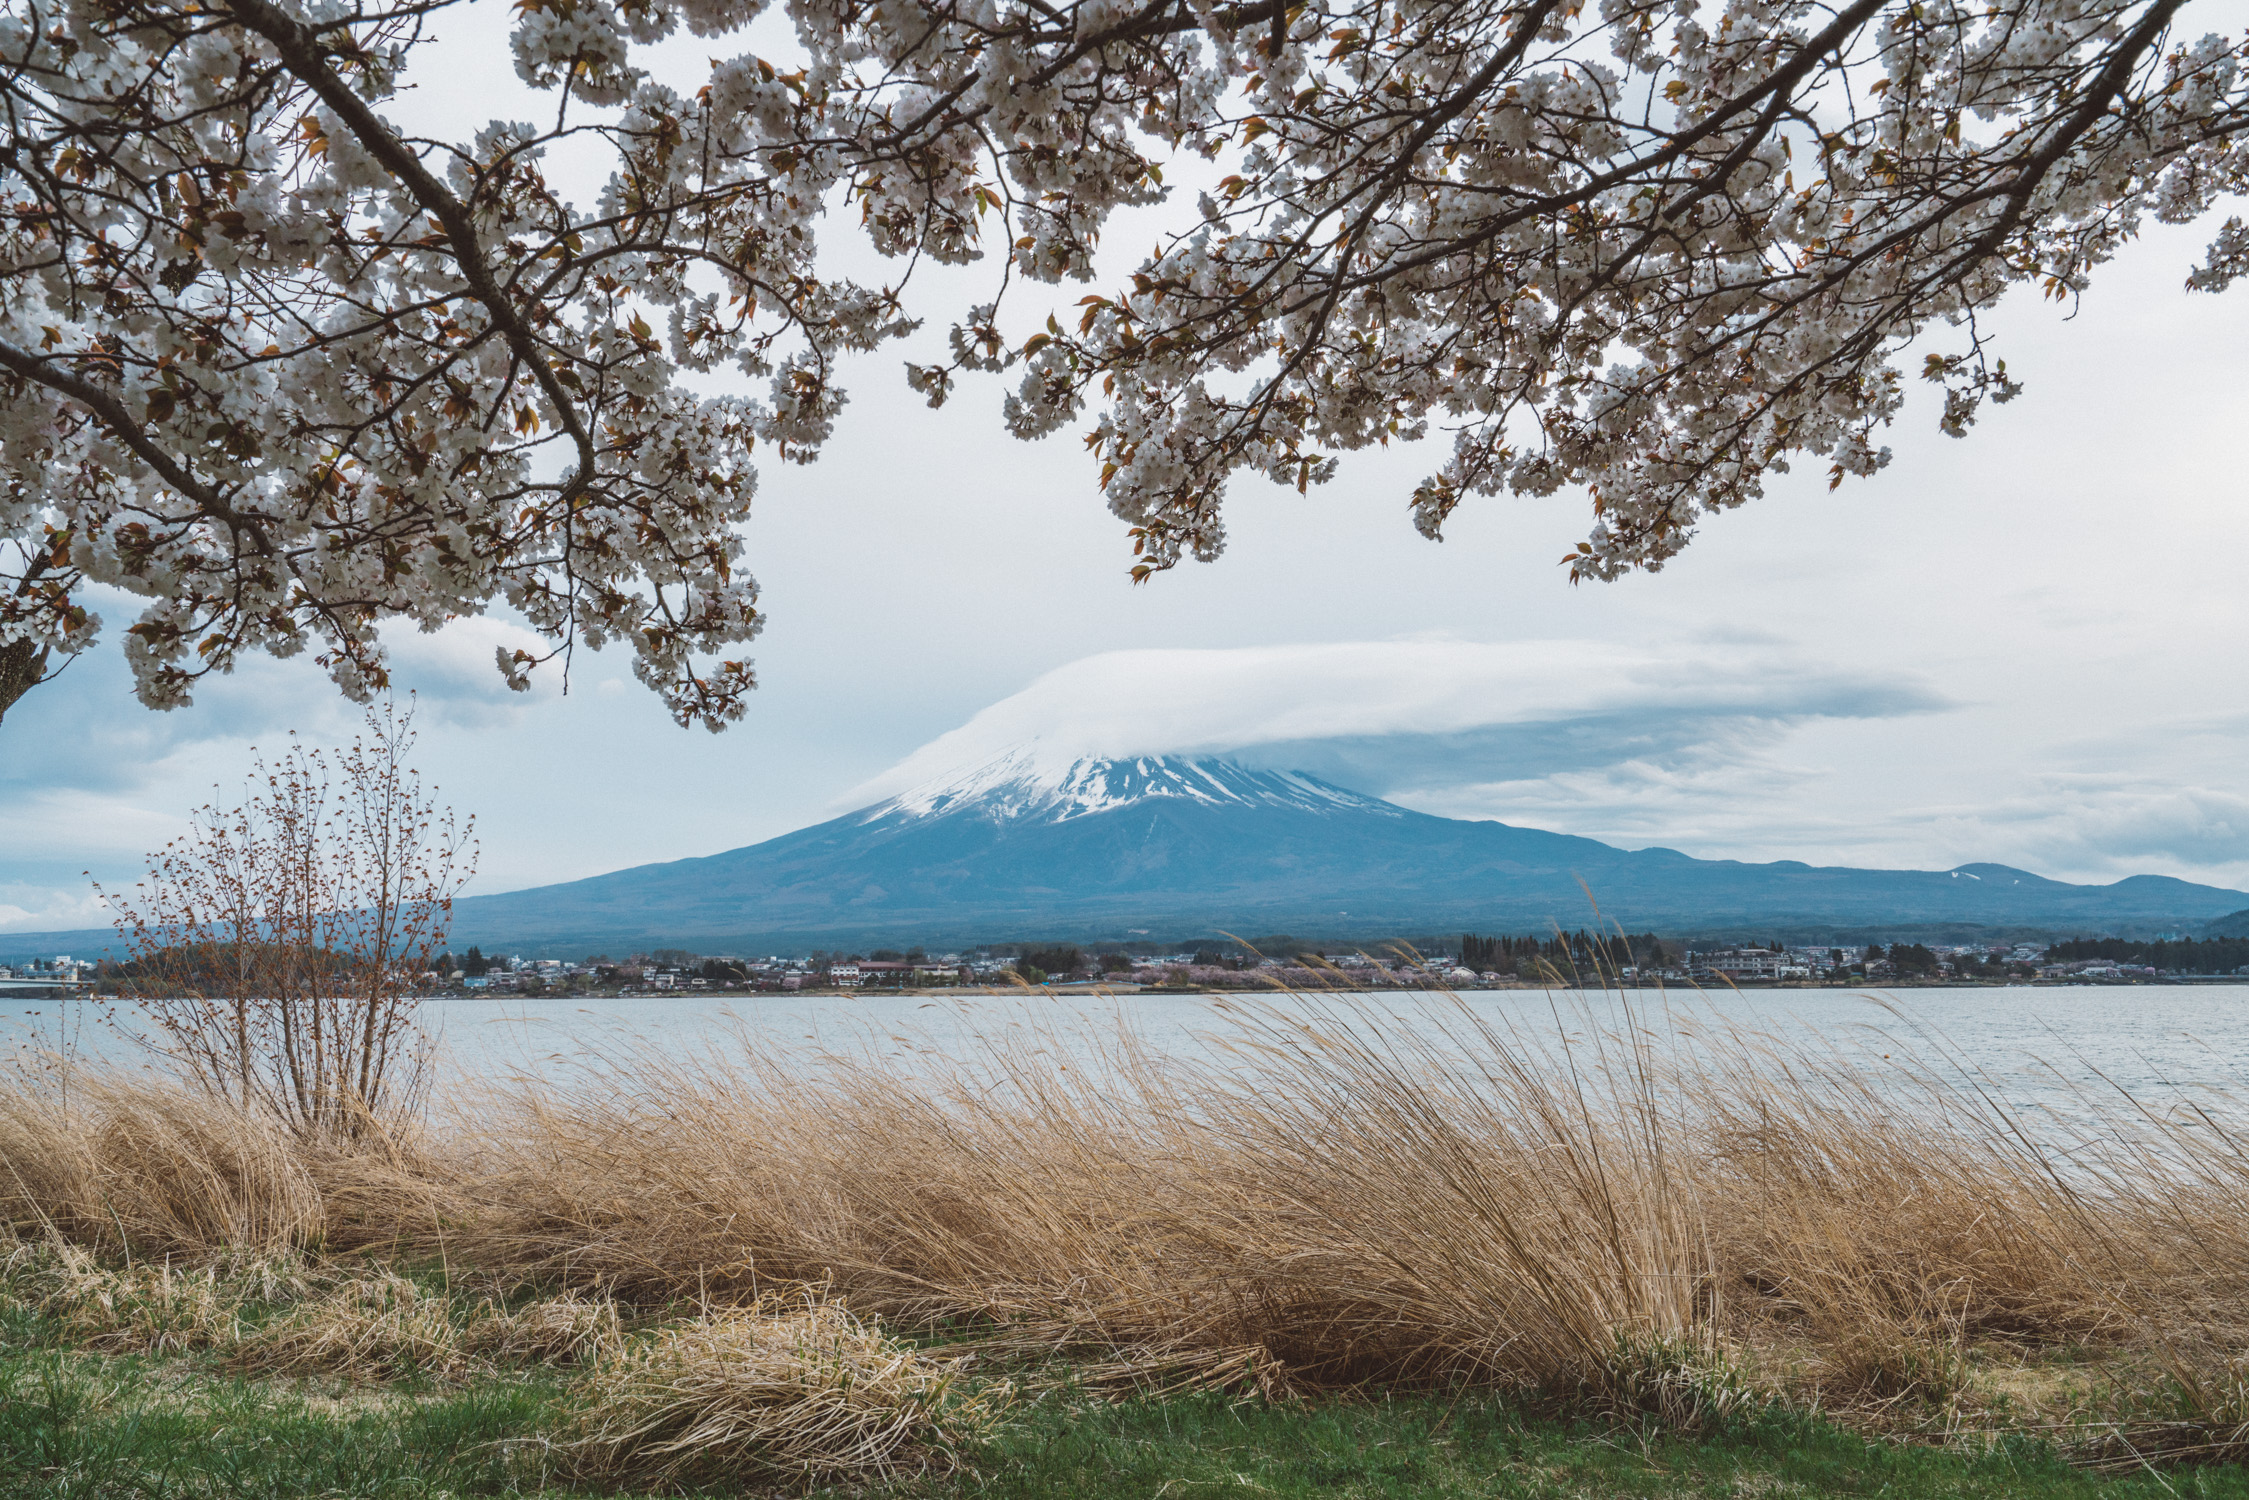 Mt-Fuji cover by clouds during cherry blossom [David Tan]